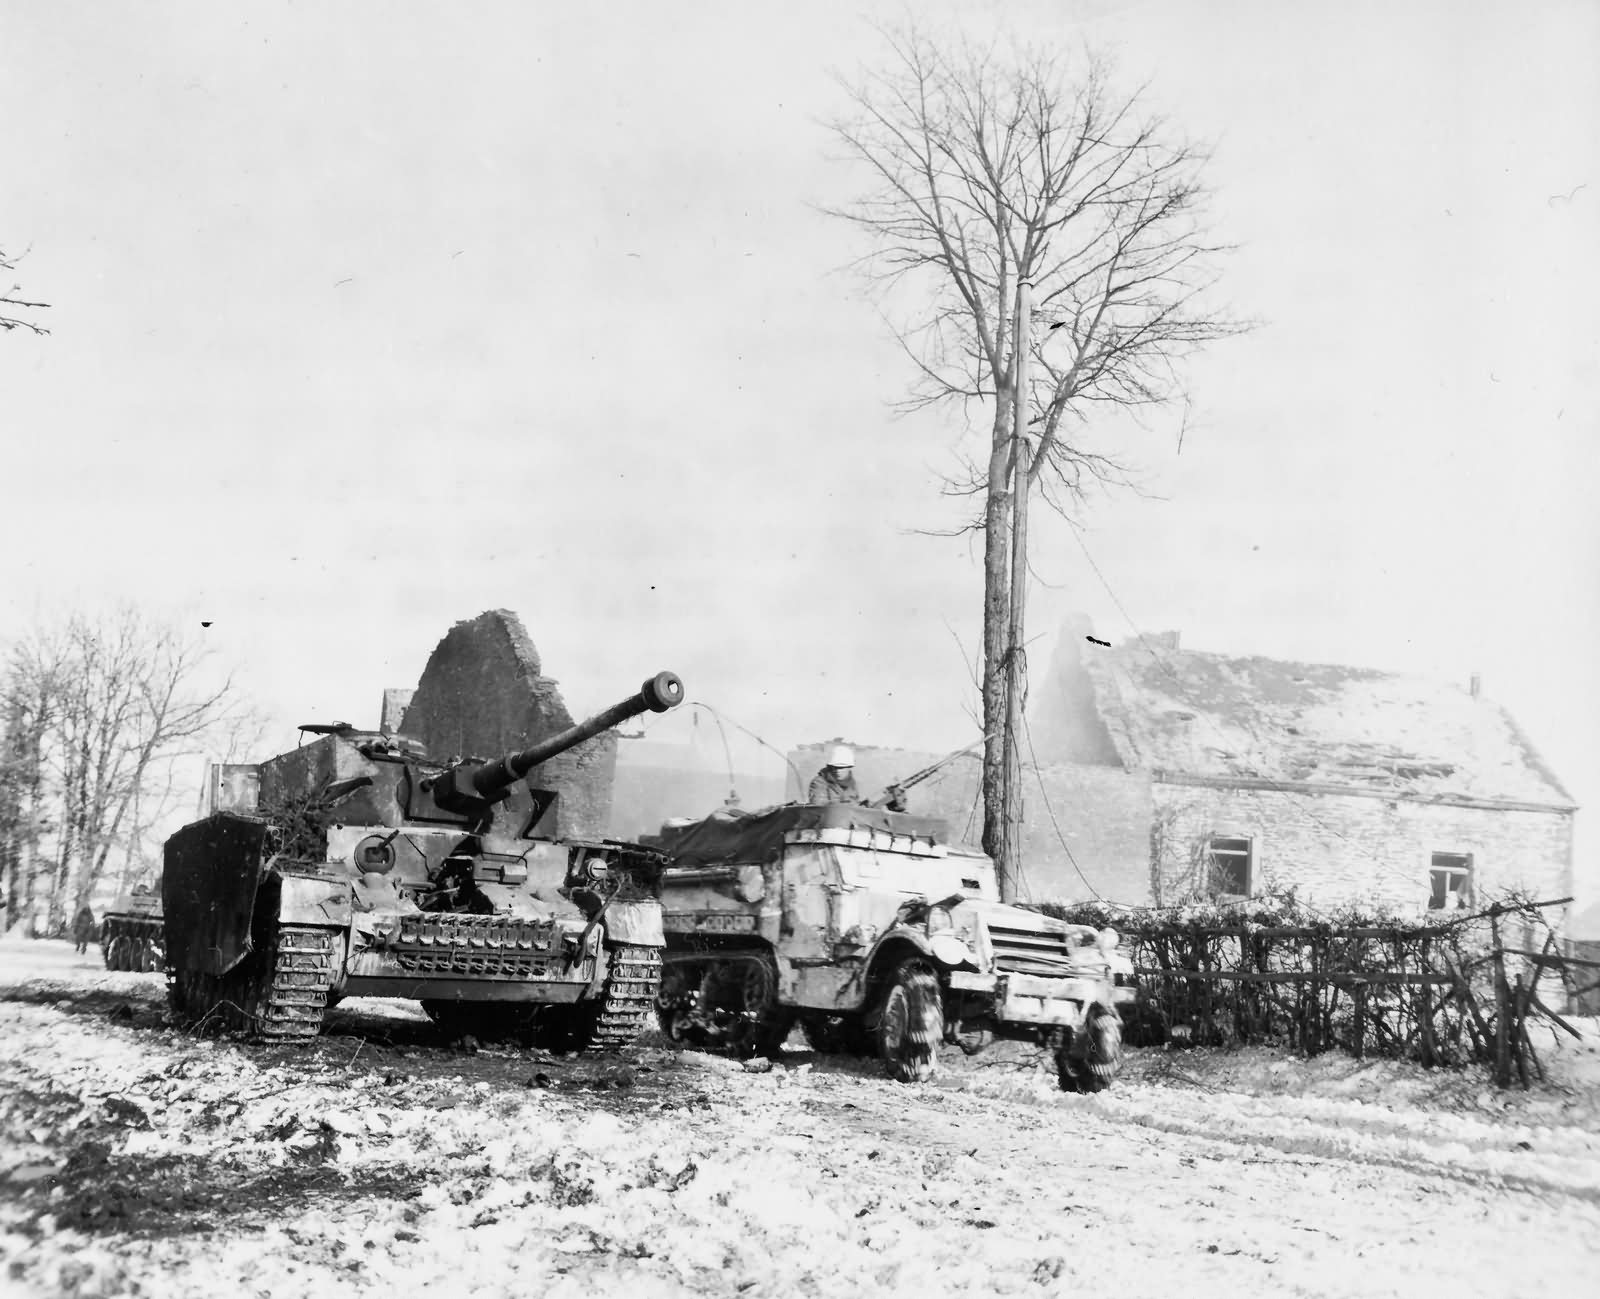 american-m3a1-drives-past-a-destroyed-german-pz-kpfw-iv-j-in-foy-belgium-during-the-battle-of-the-bulge.jpg